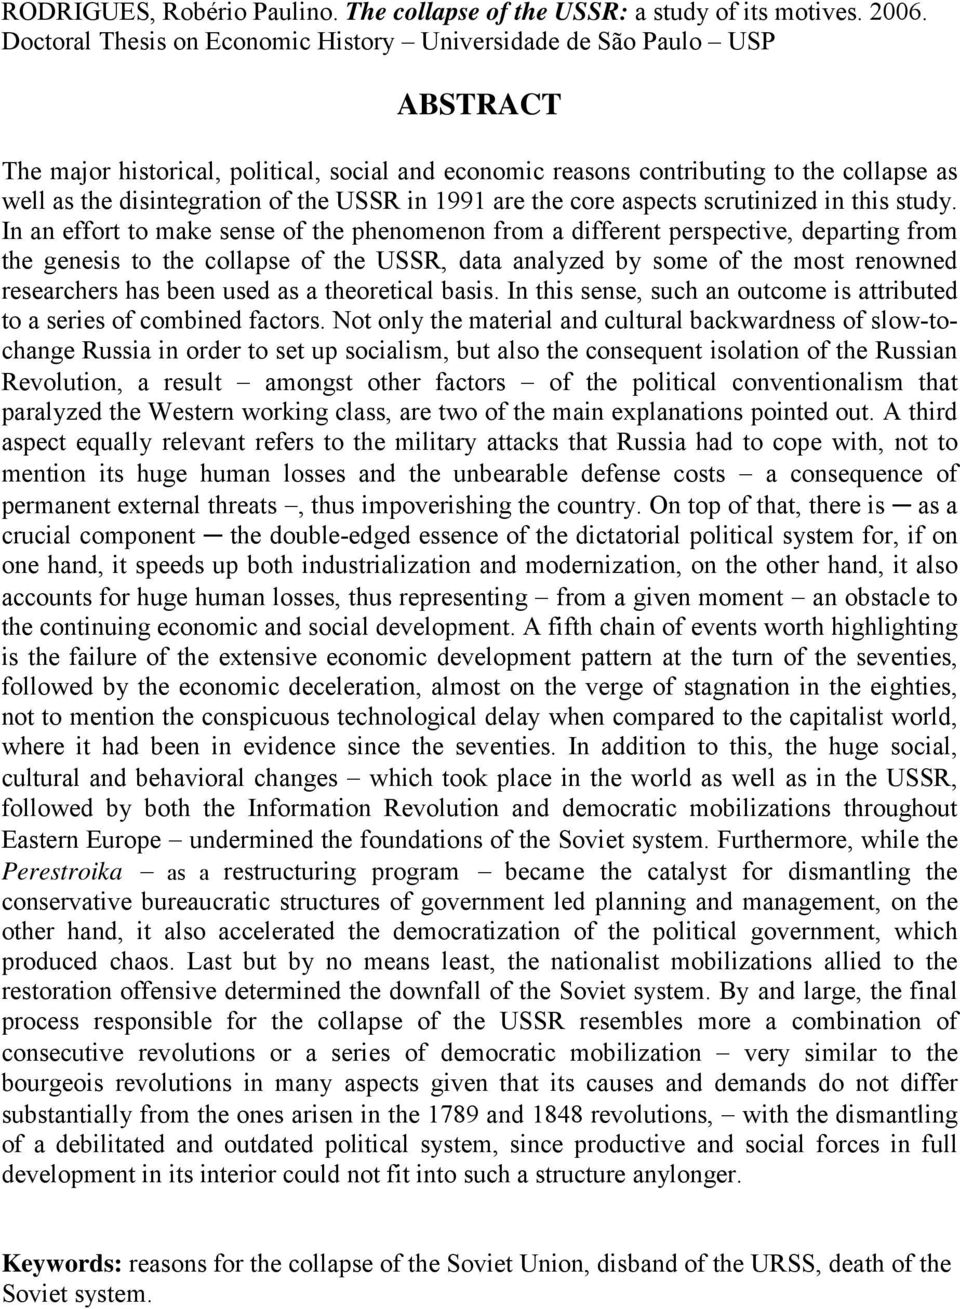 the USSR in 1991 are the core aspects scrutinized in this study.